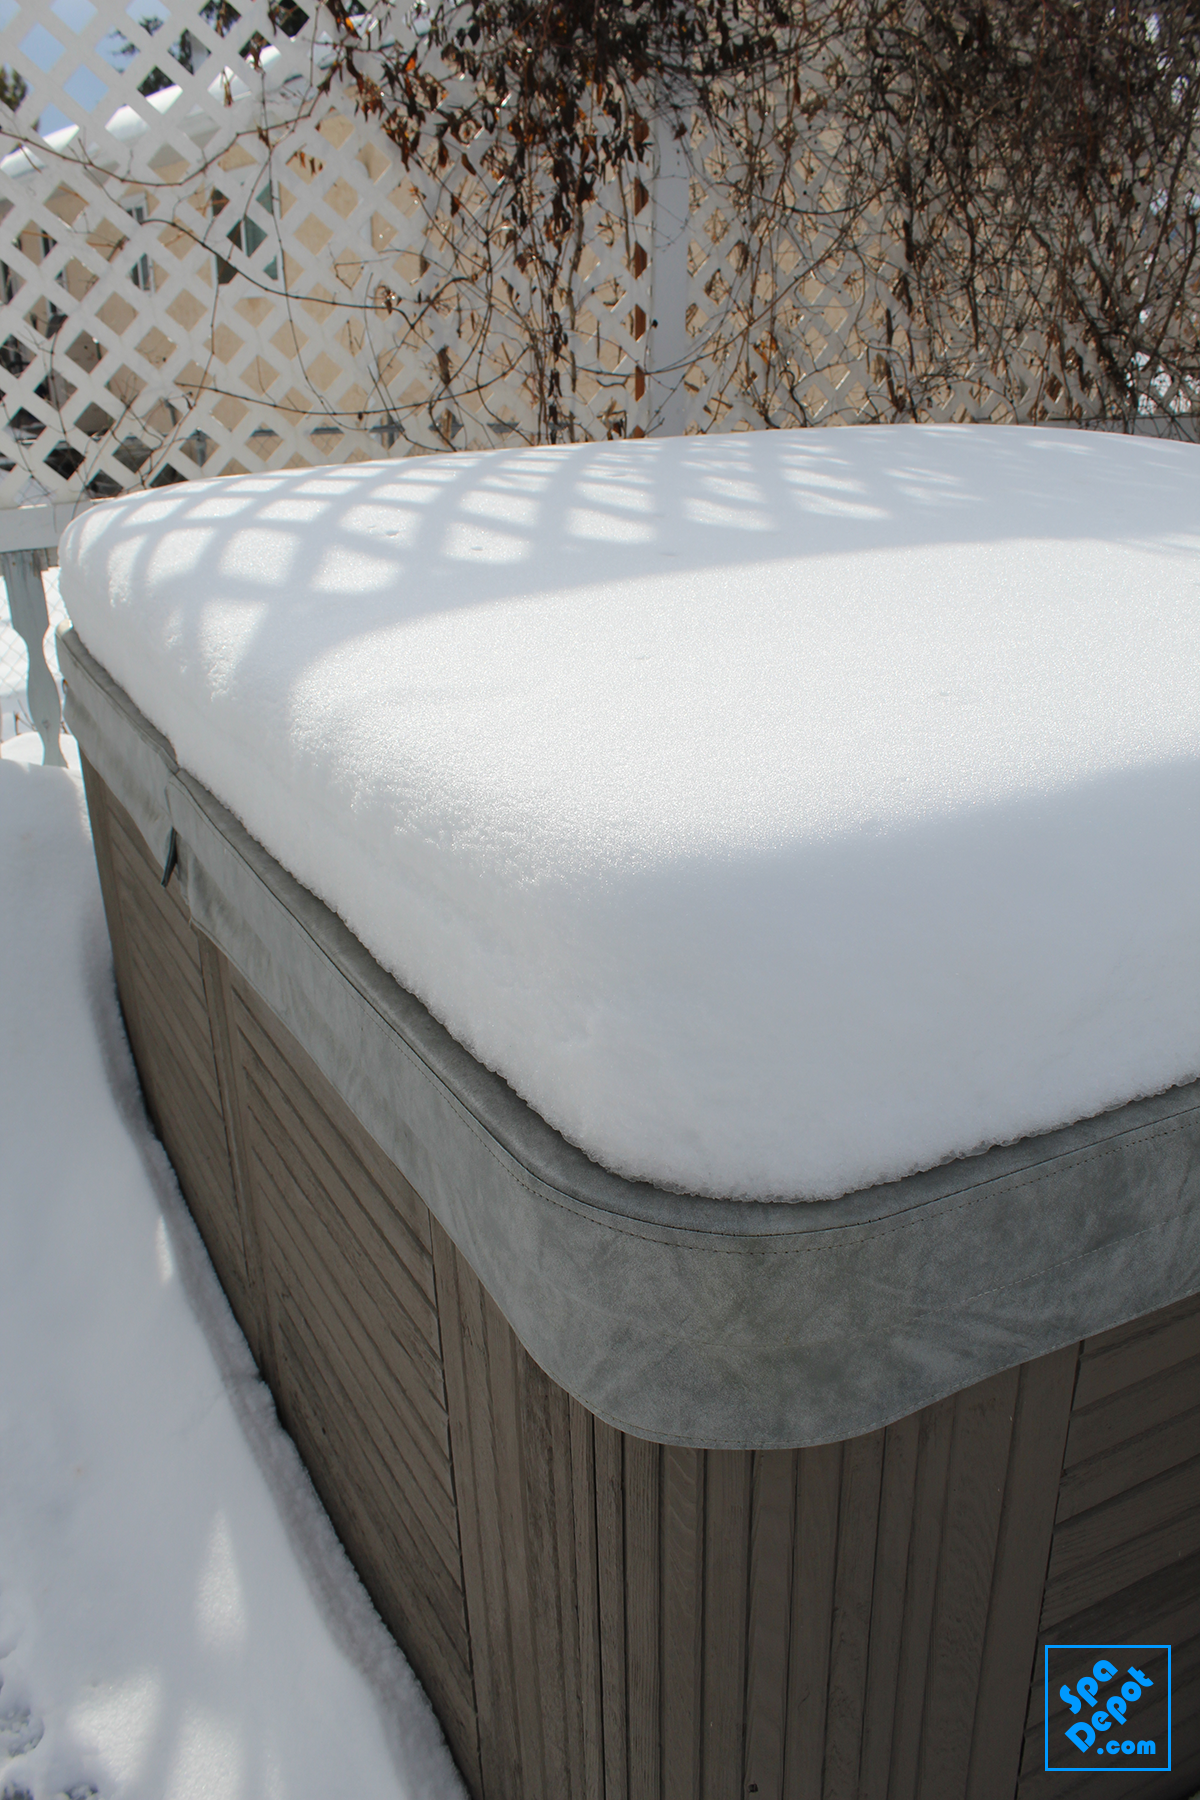 Snow Covered Hot Tub